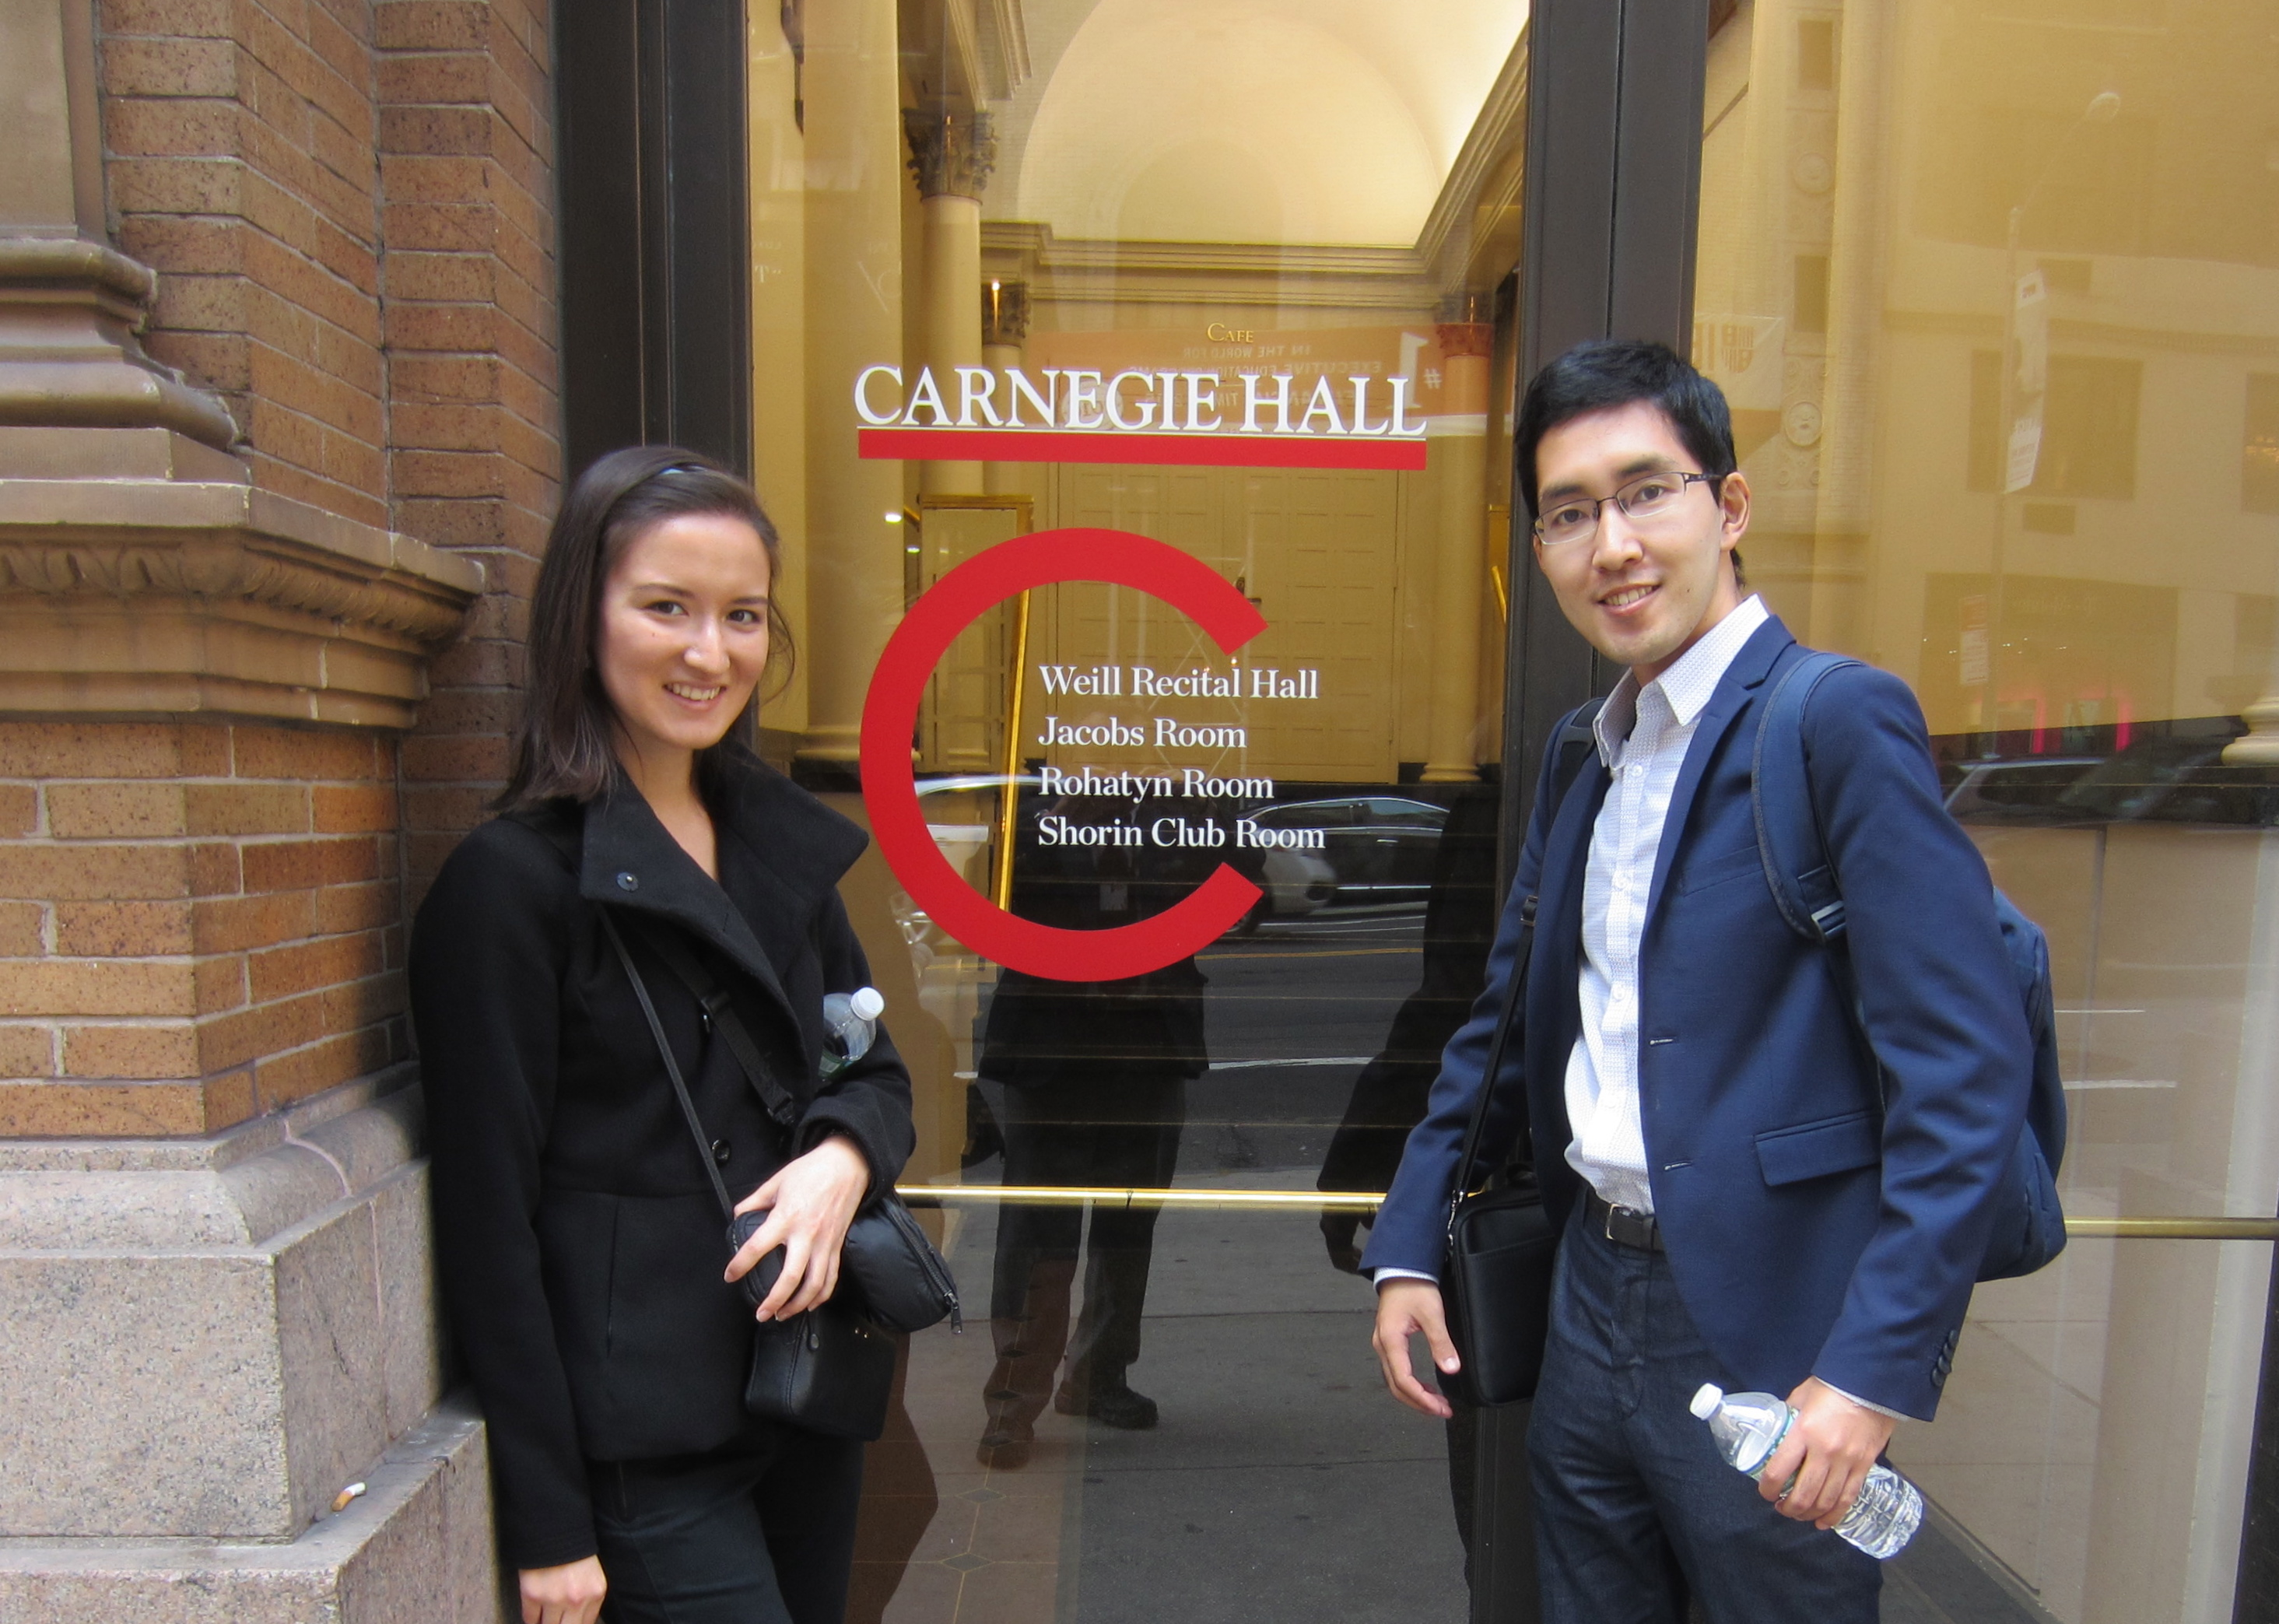 We are here at Carnegie Hall!